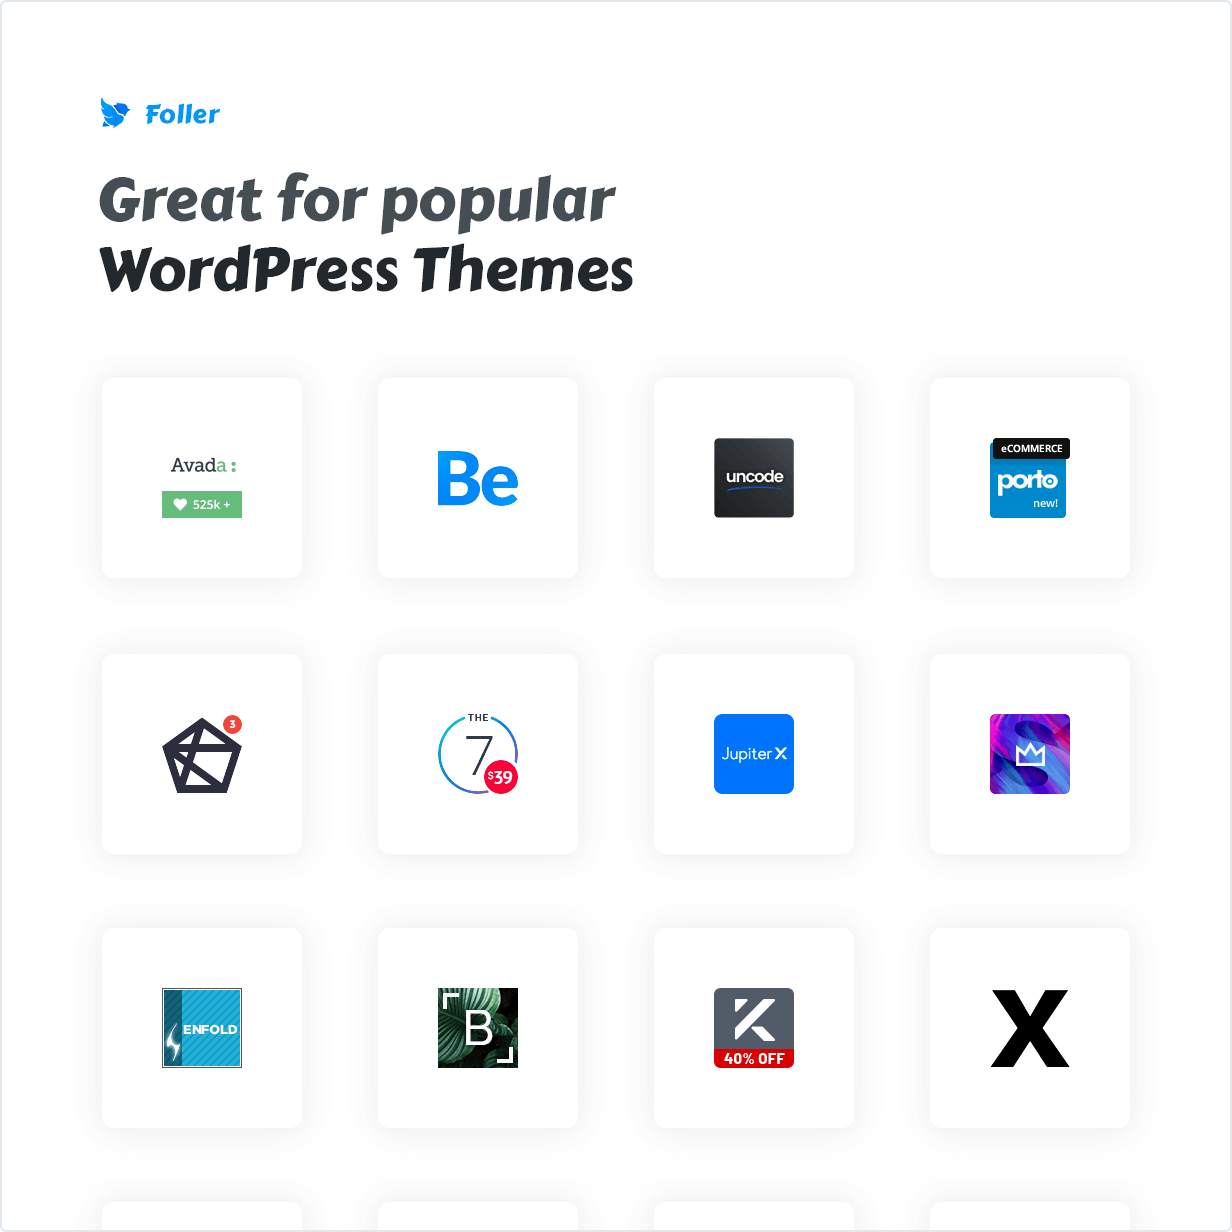 Great for popular WordPress Themes